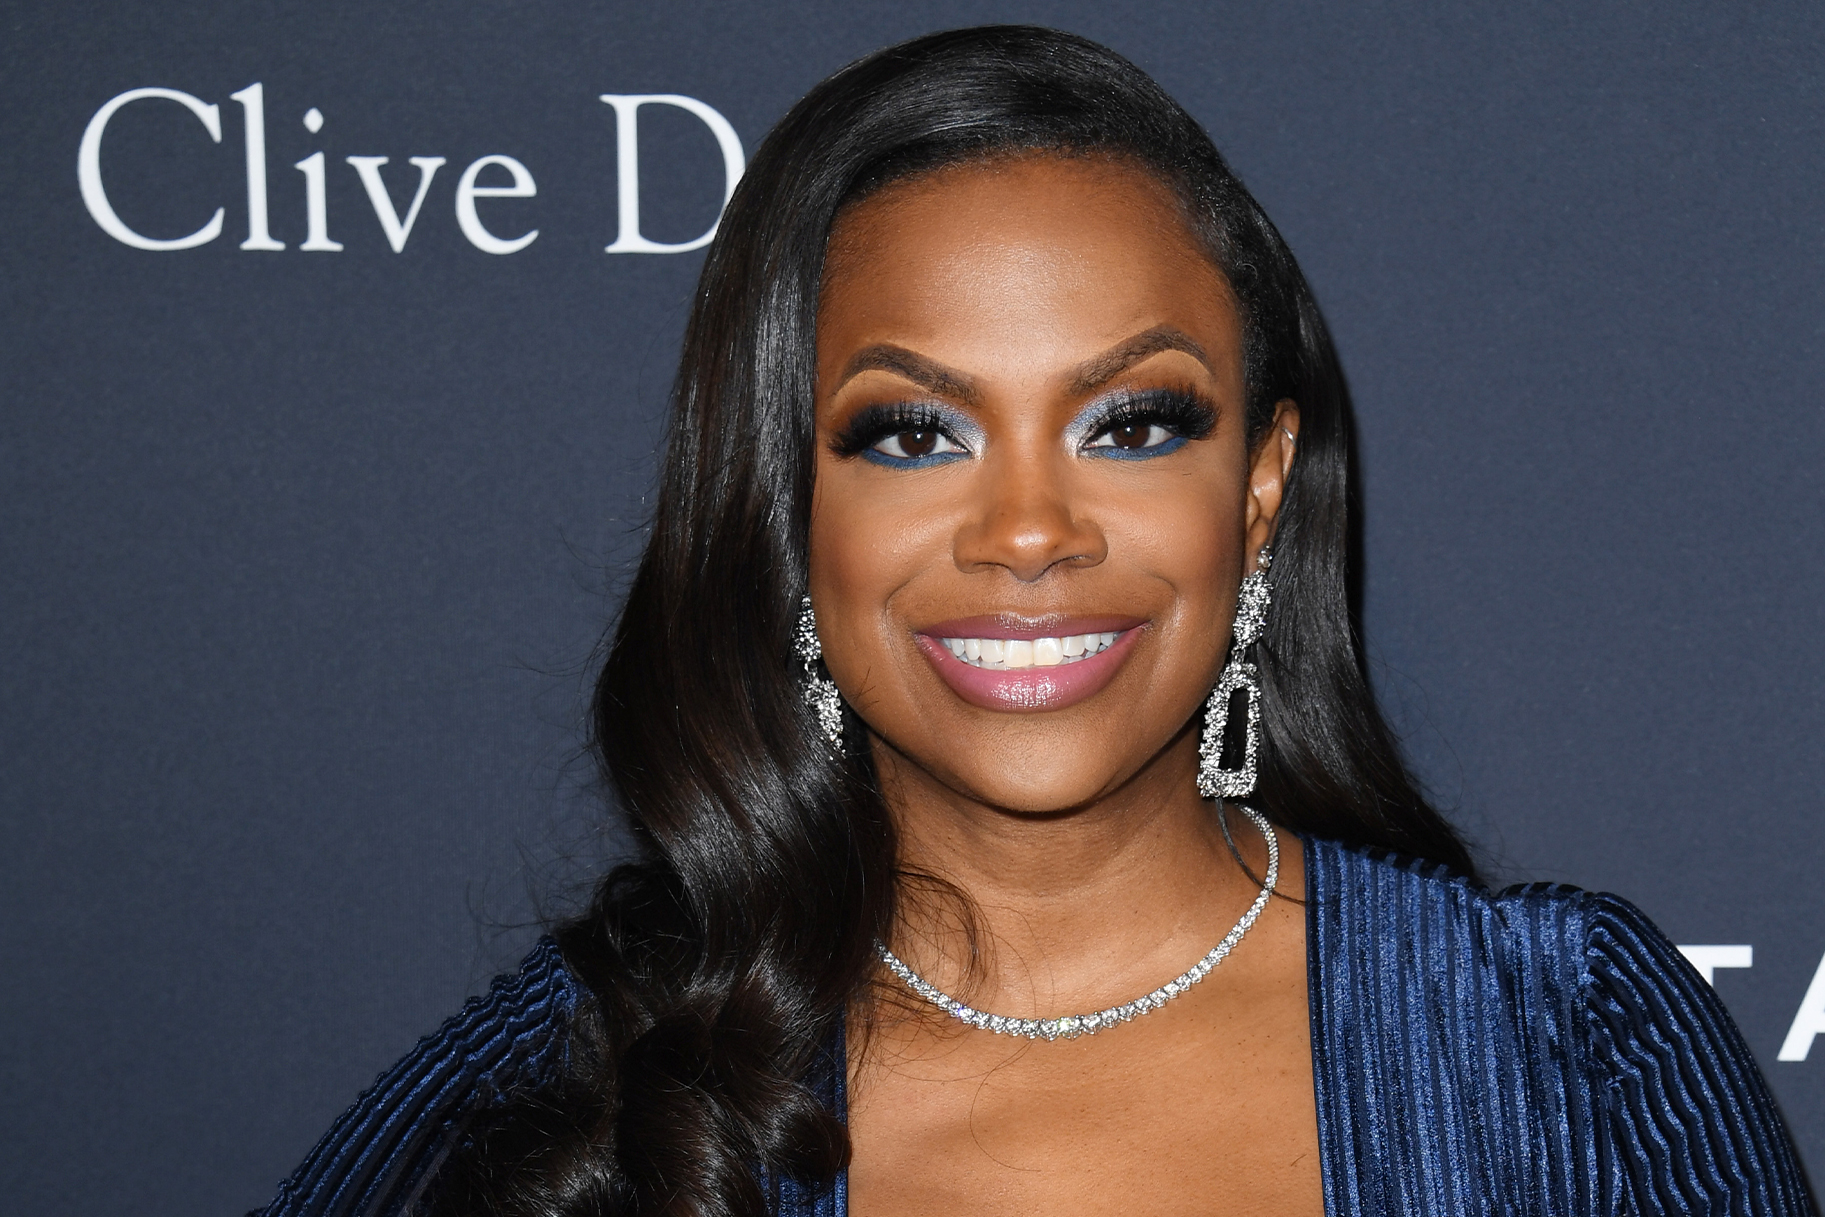 Kandi Burruss' Fans Are Having A Blast Seeing Her Faces In These Photos – See Them Here